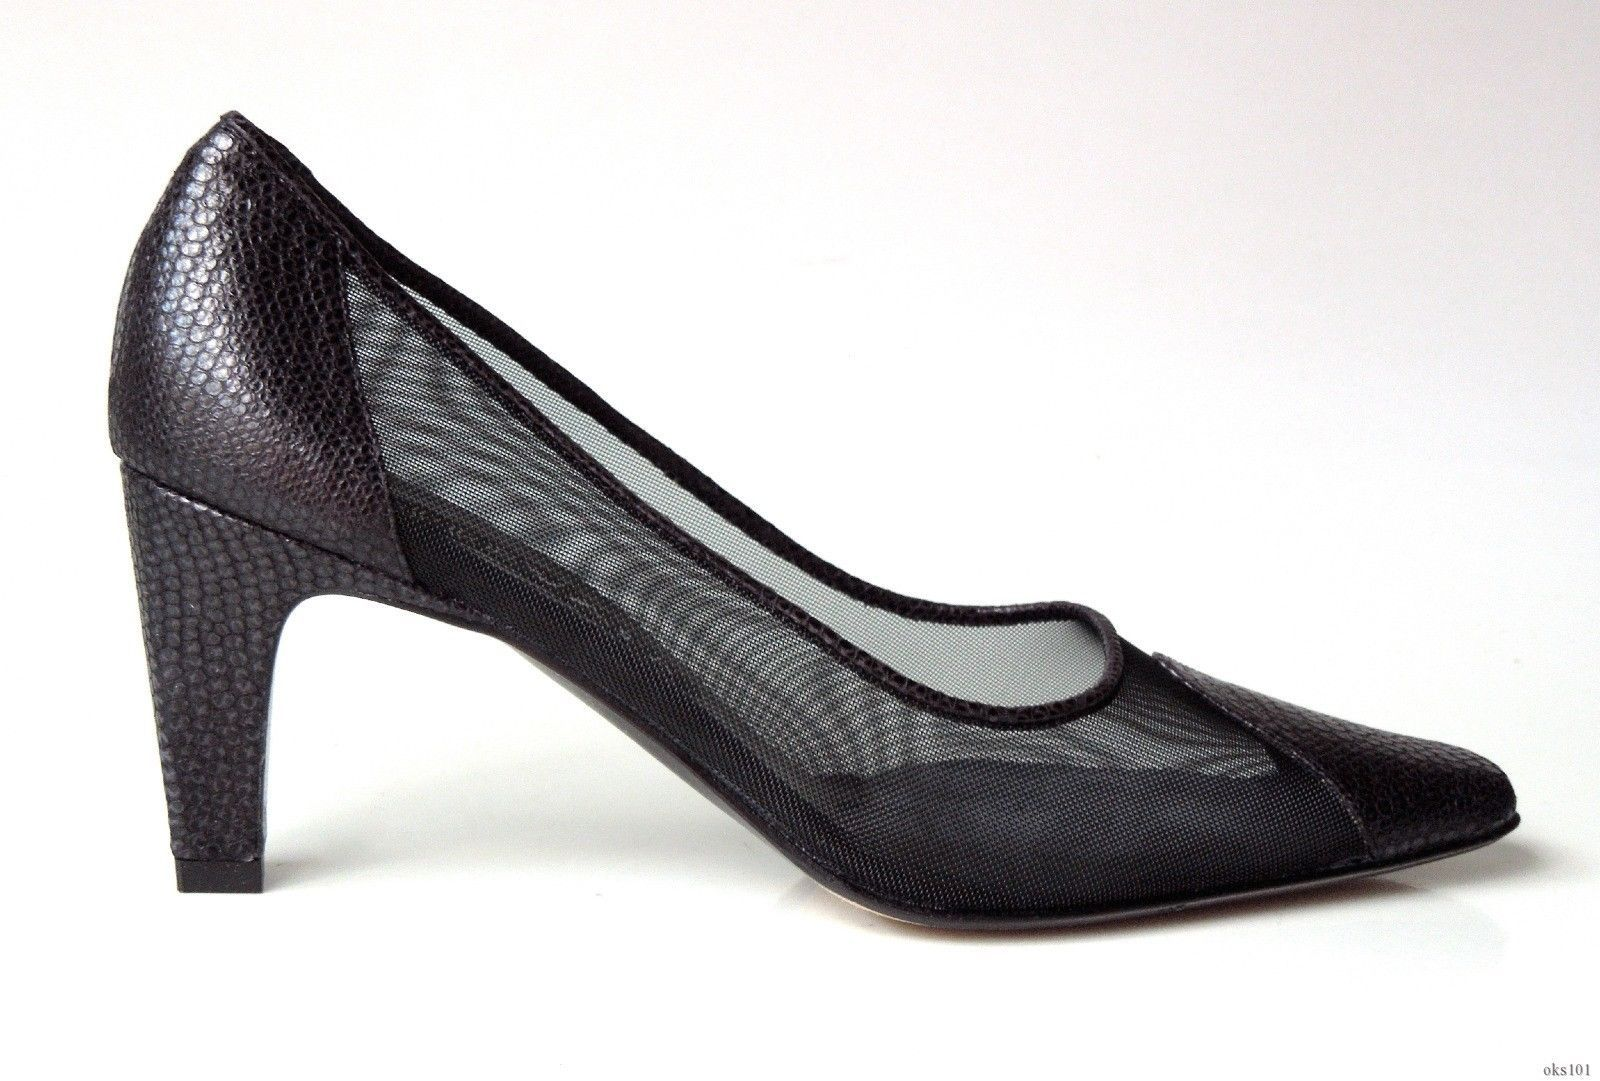 102294aee5d71 new $350 PREVATA 'Salute' black leather mesh shoes Italy - classic ...